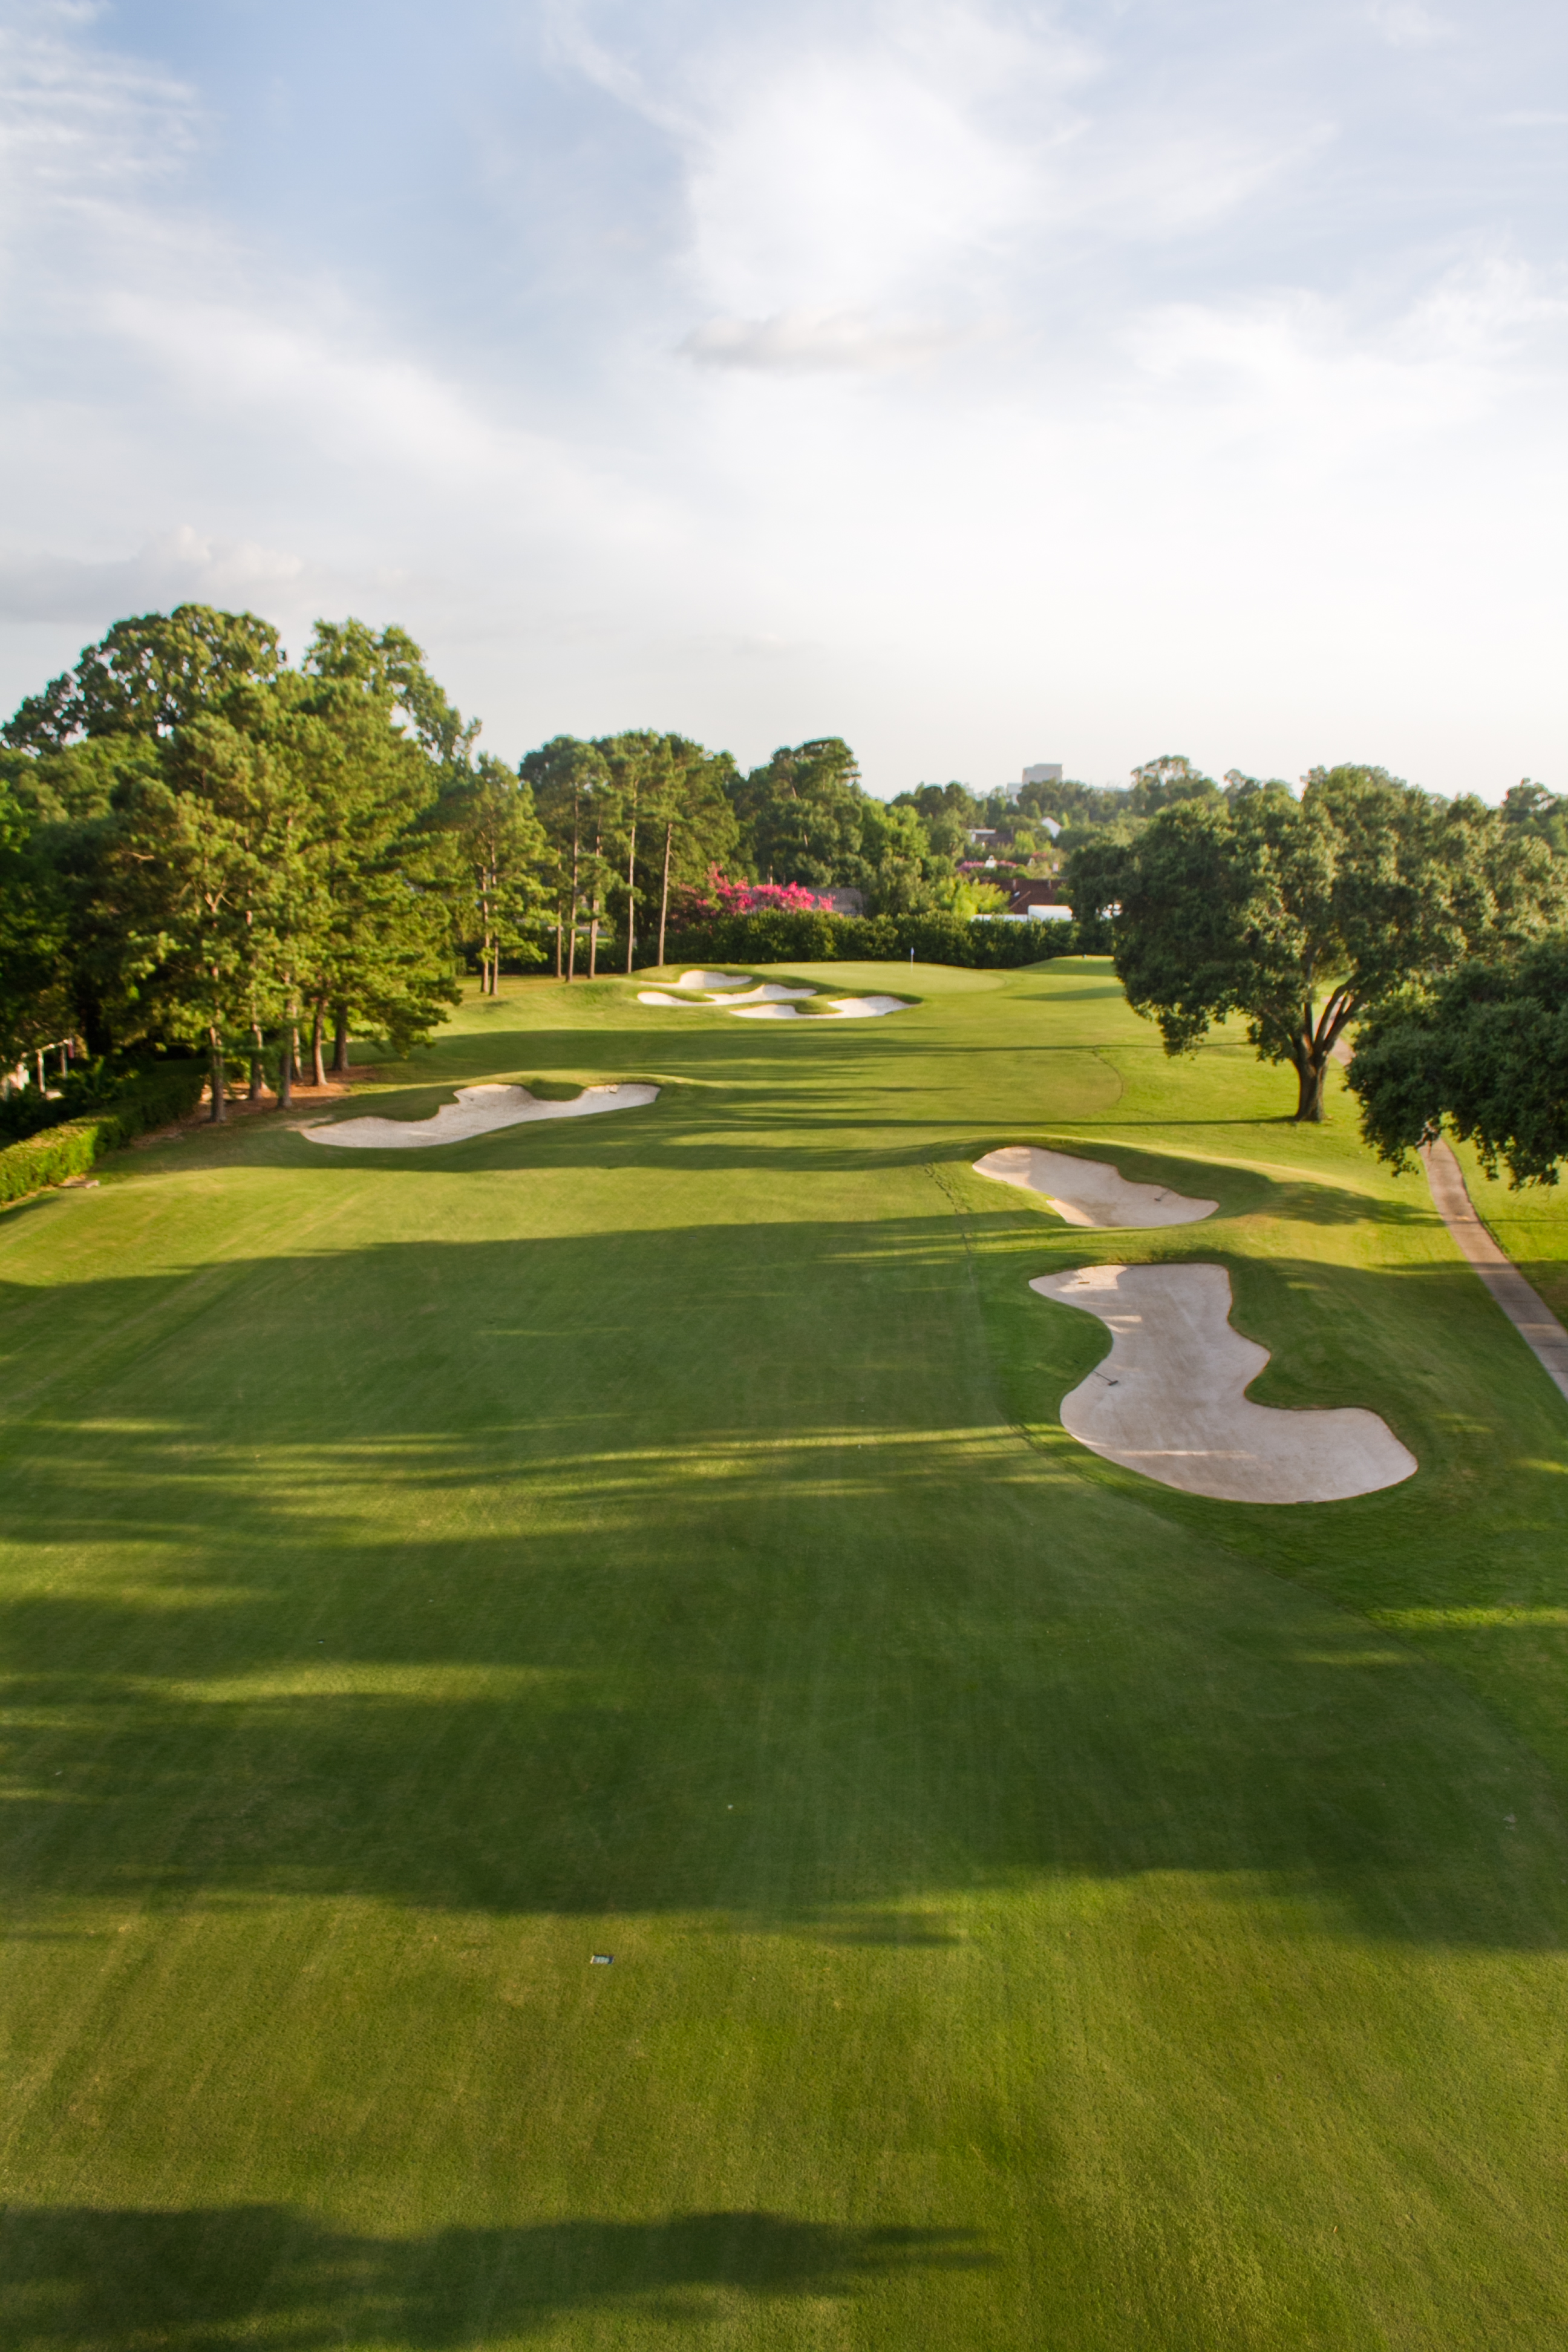 Derek Busby and Patrick Christovich Highlight Champions Exempt for 100th Louisiana Amateur Championship at Baton Rouge Country Club